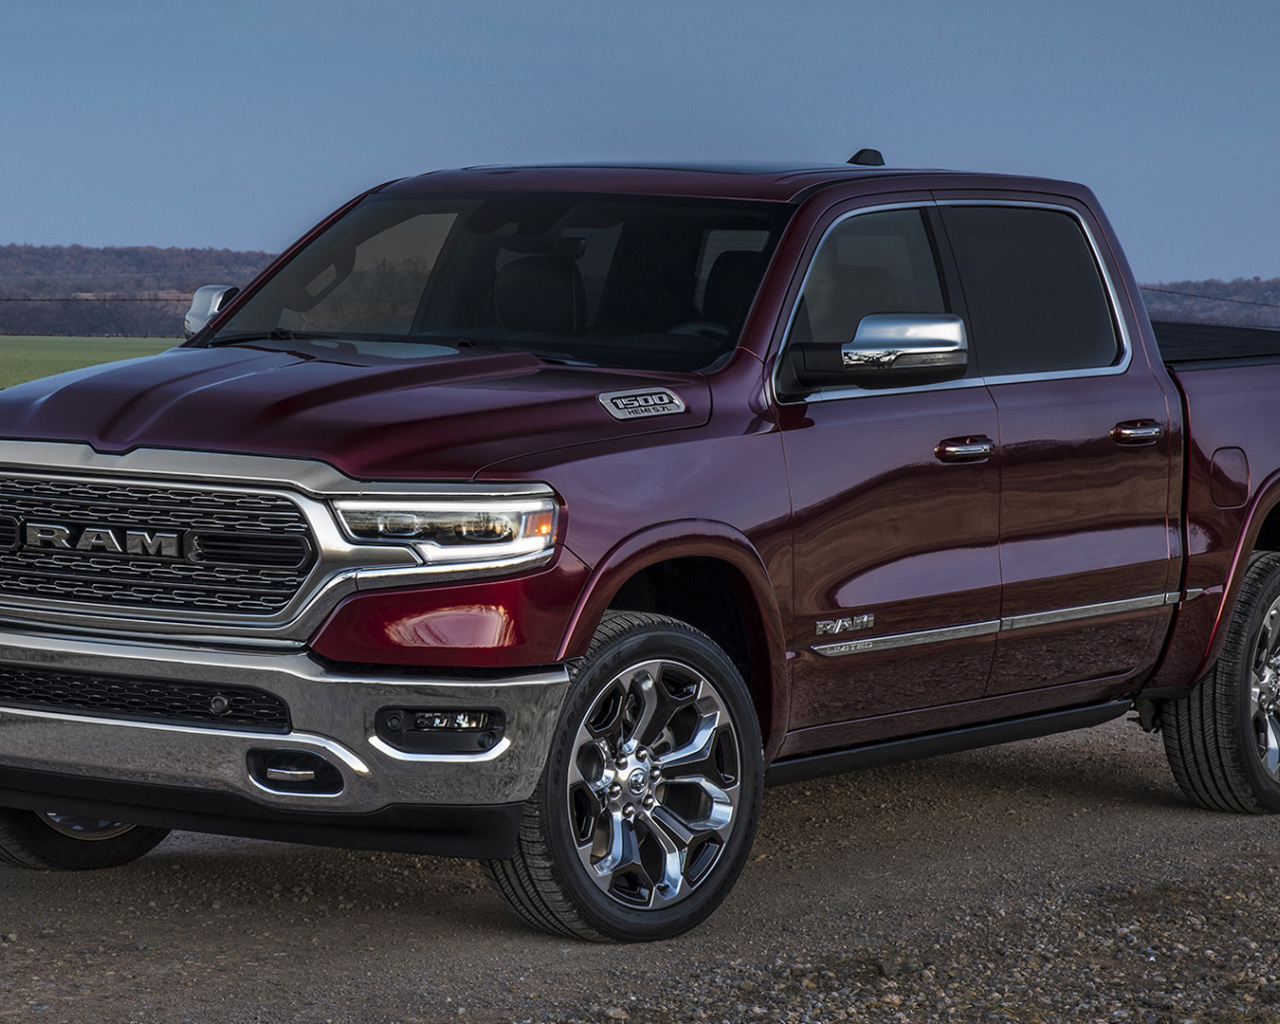 Free Download 2019 Ram 1500 Limited Crew Cab Hd Wallpaper